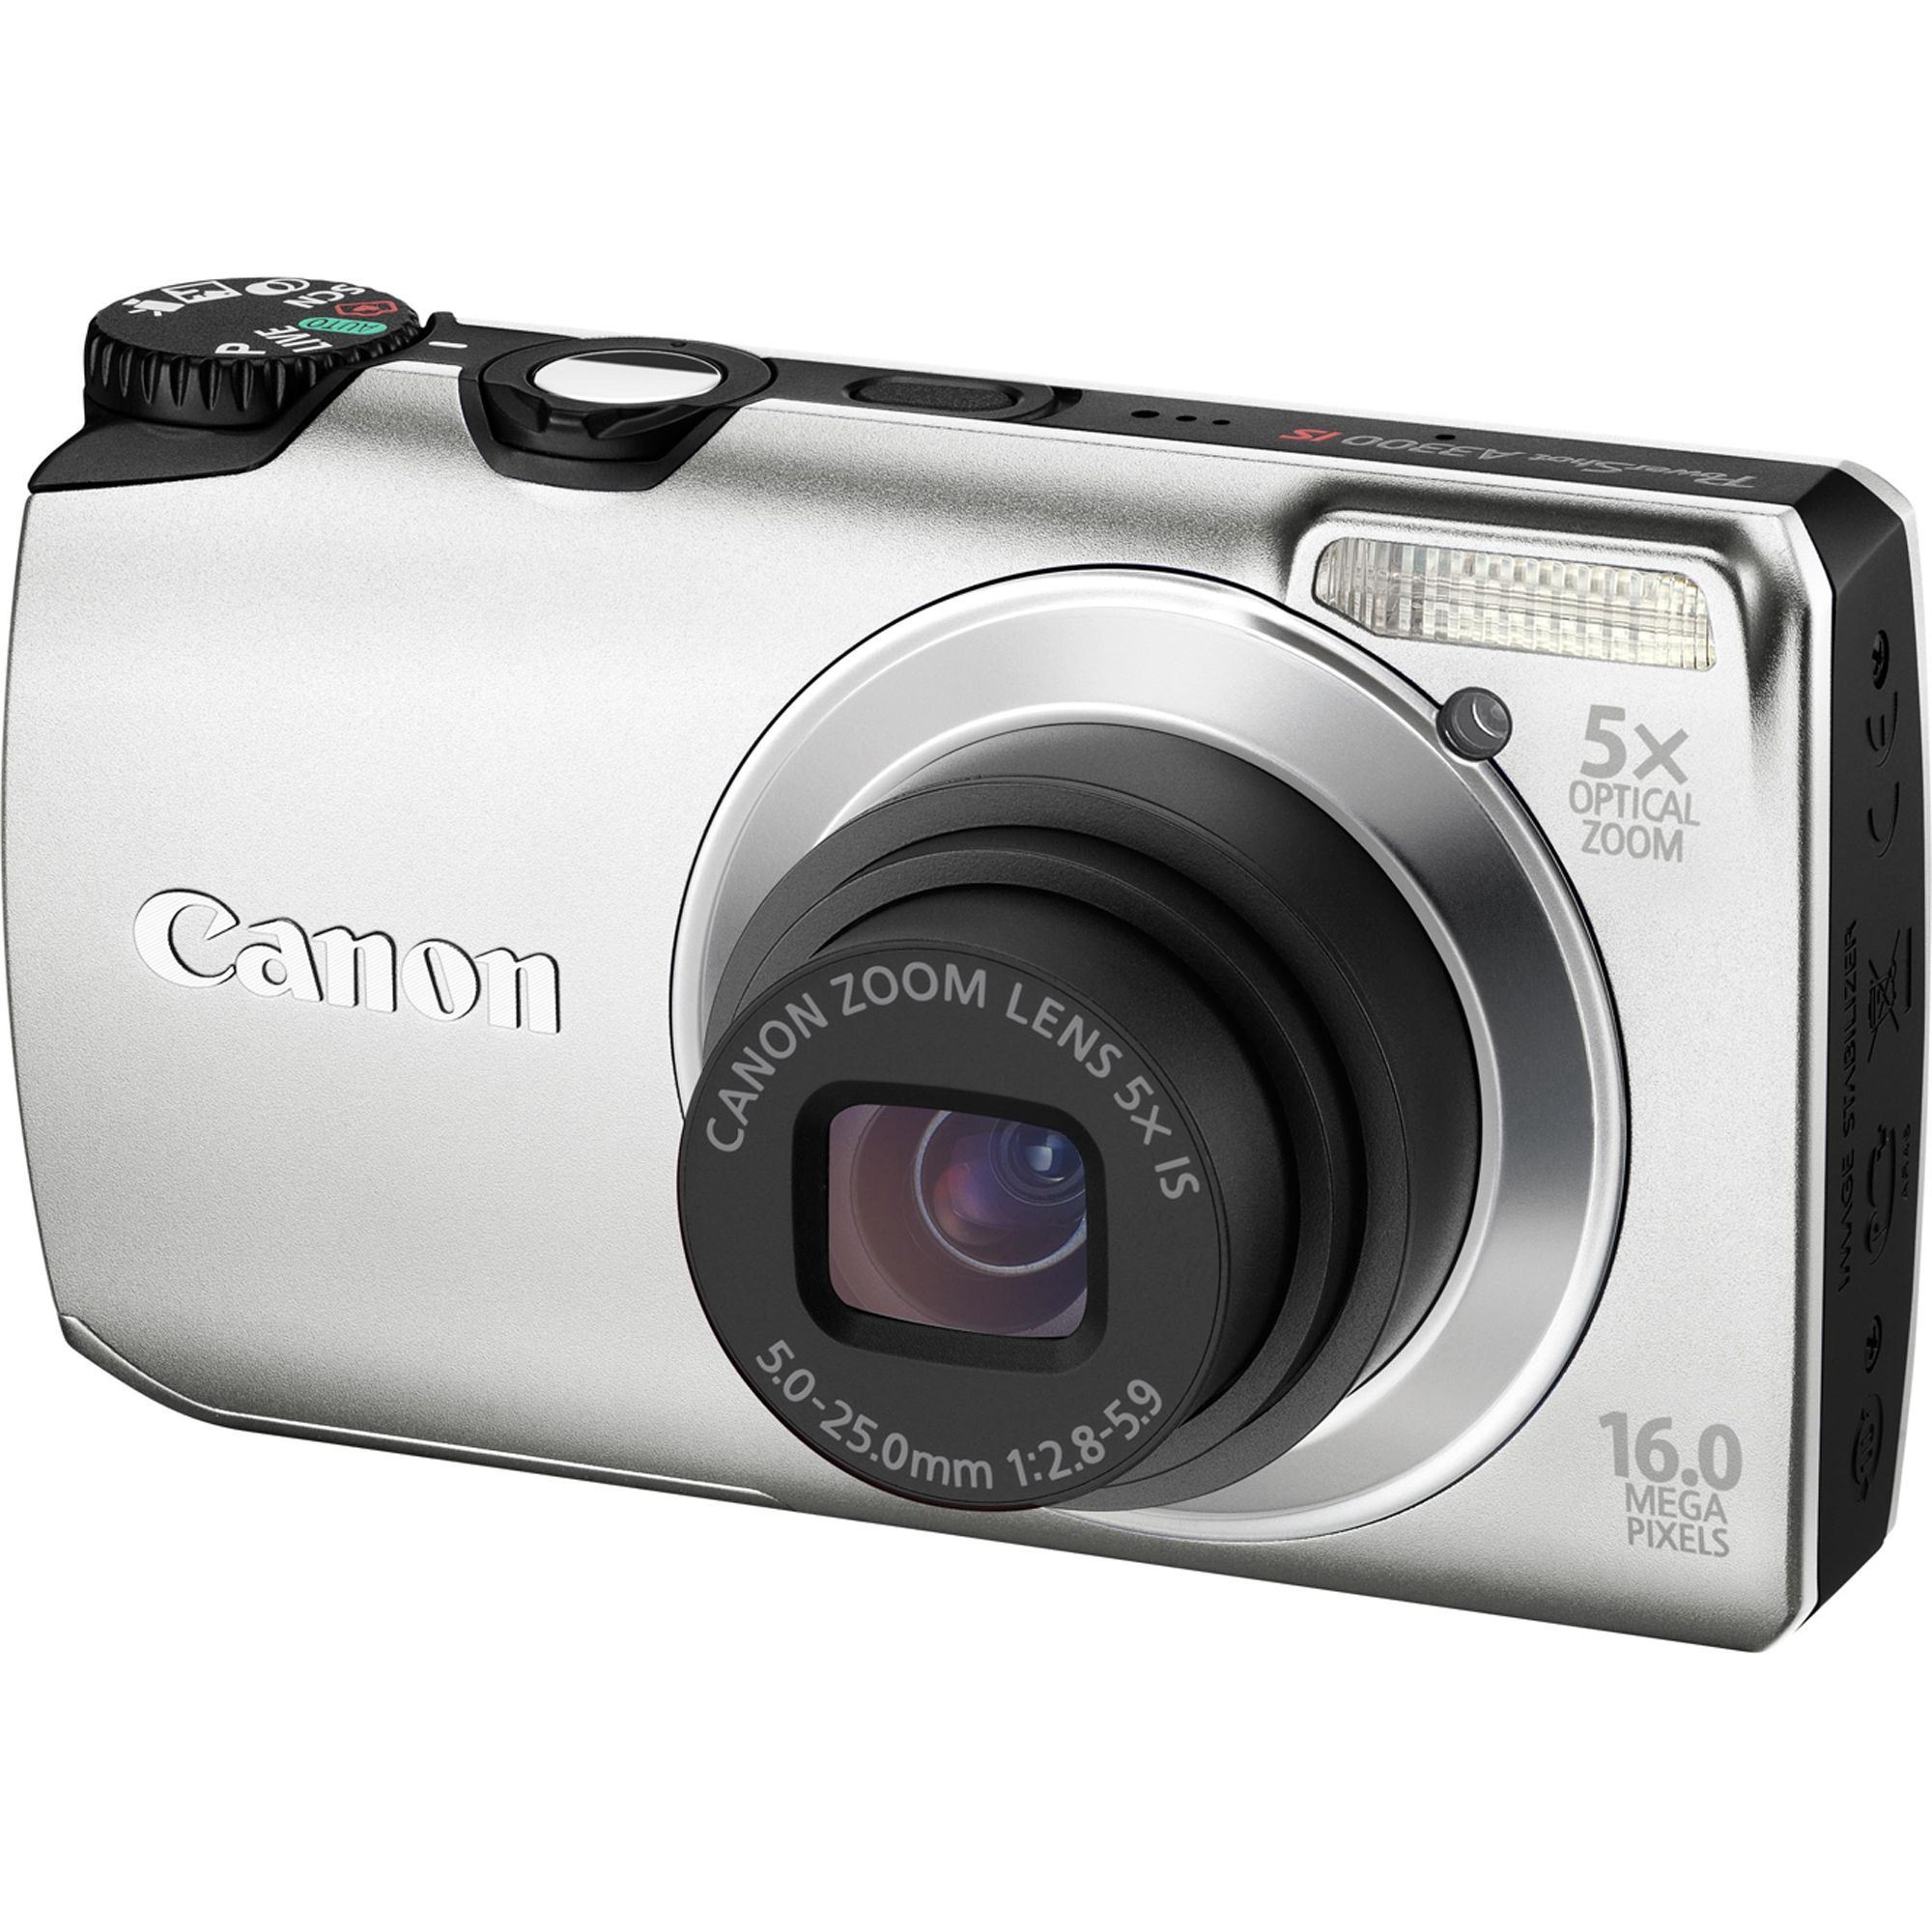 Canon PowerShot A3300 IS 16 Megapixel Digital Camera- Silver